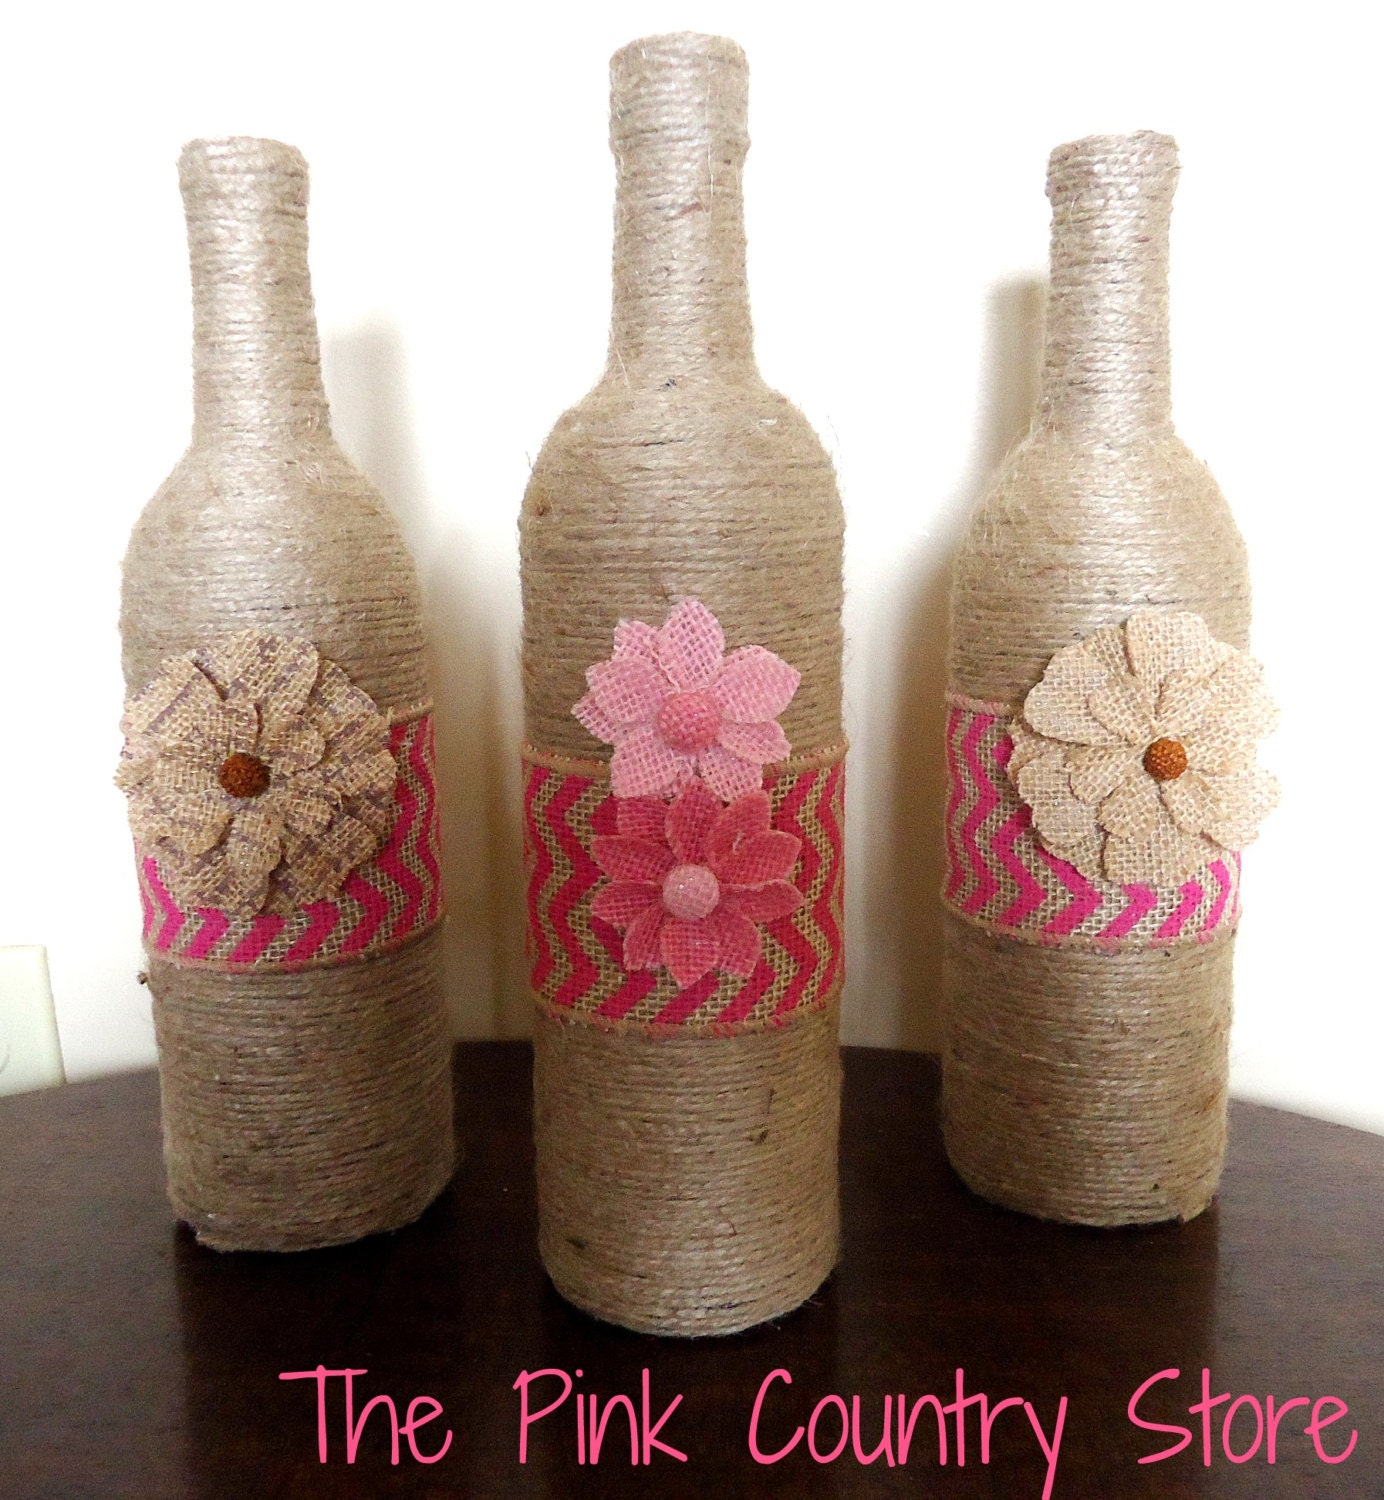 How to Make Twine Wrapped Vases from Wine Bottles: 10 Steps |Twine Covered Wine Bottles